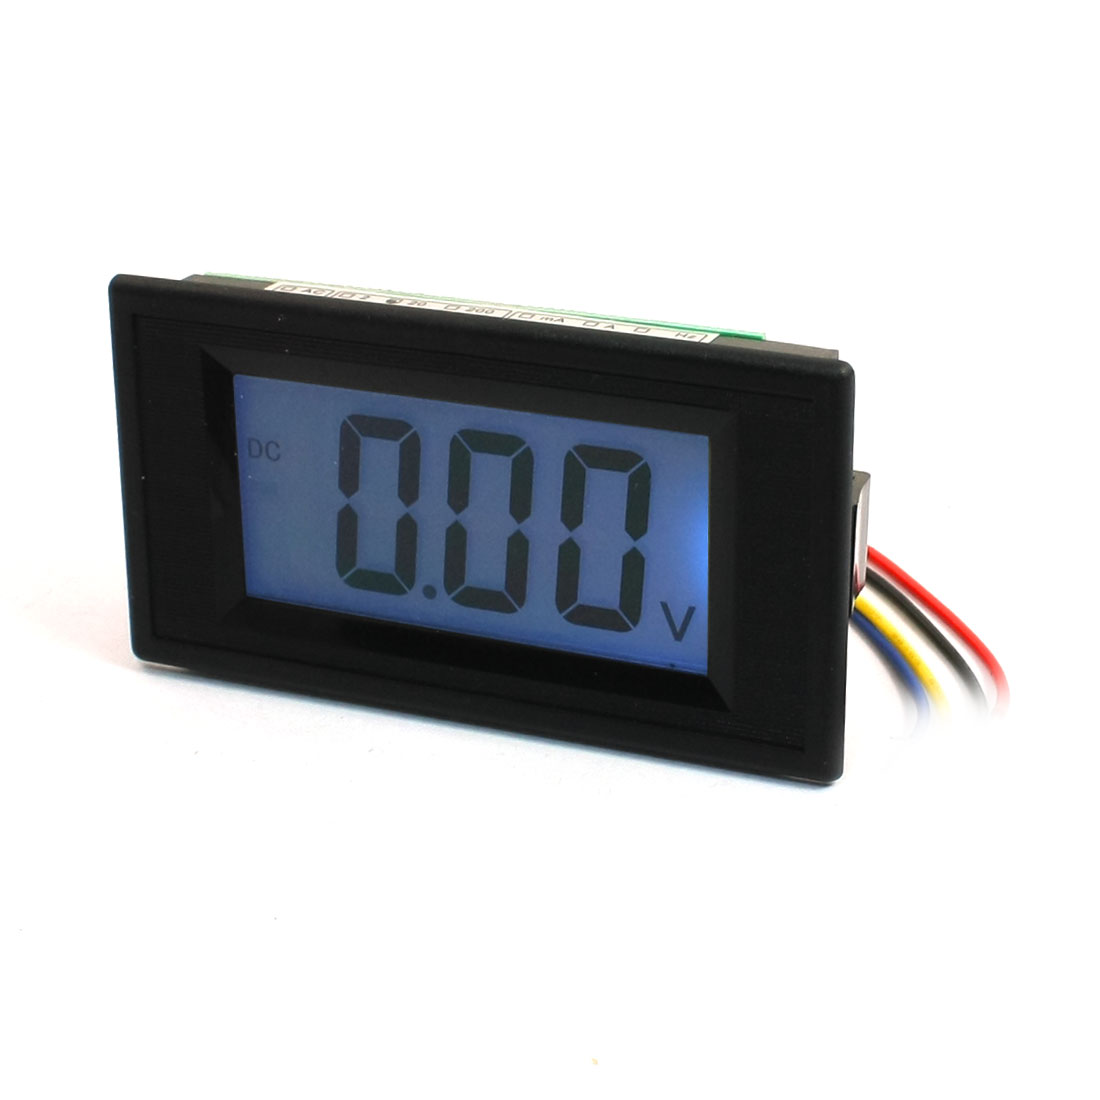 DC 0-20V Blue LED Display Volt Tester Meter 3 Bits Digital Volt Meter